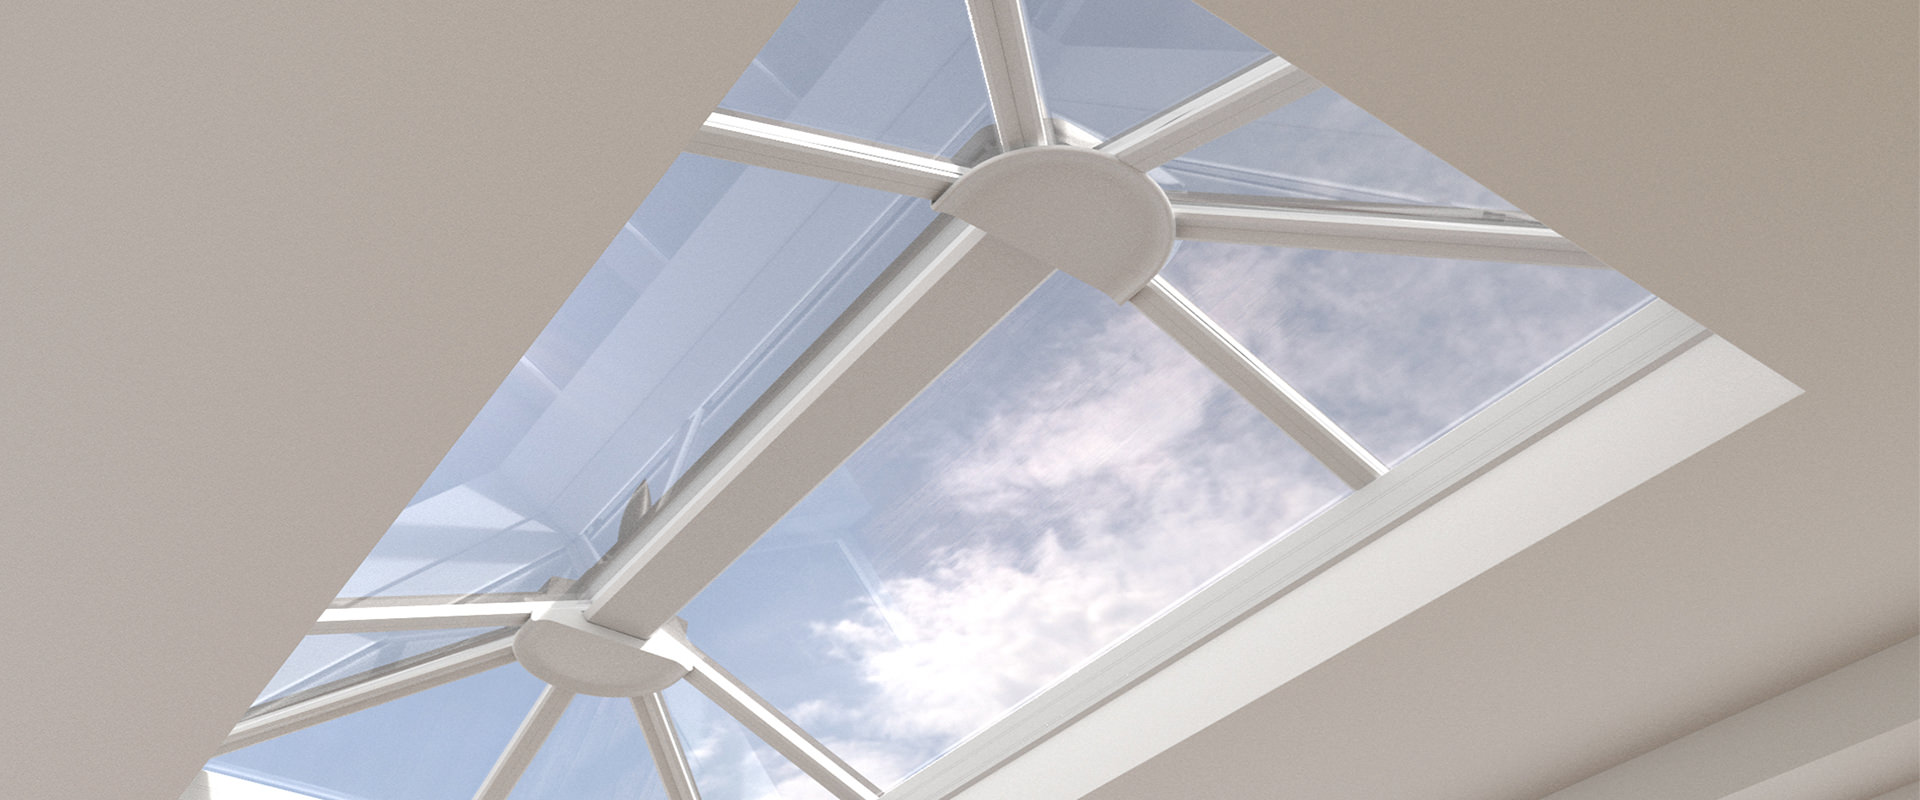 Conservatory Roofs Buckinghamshire